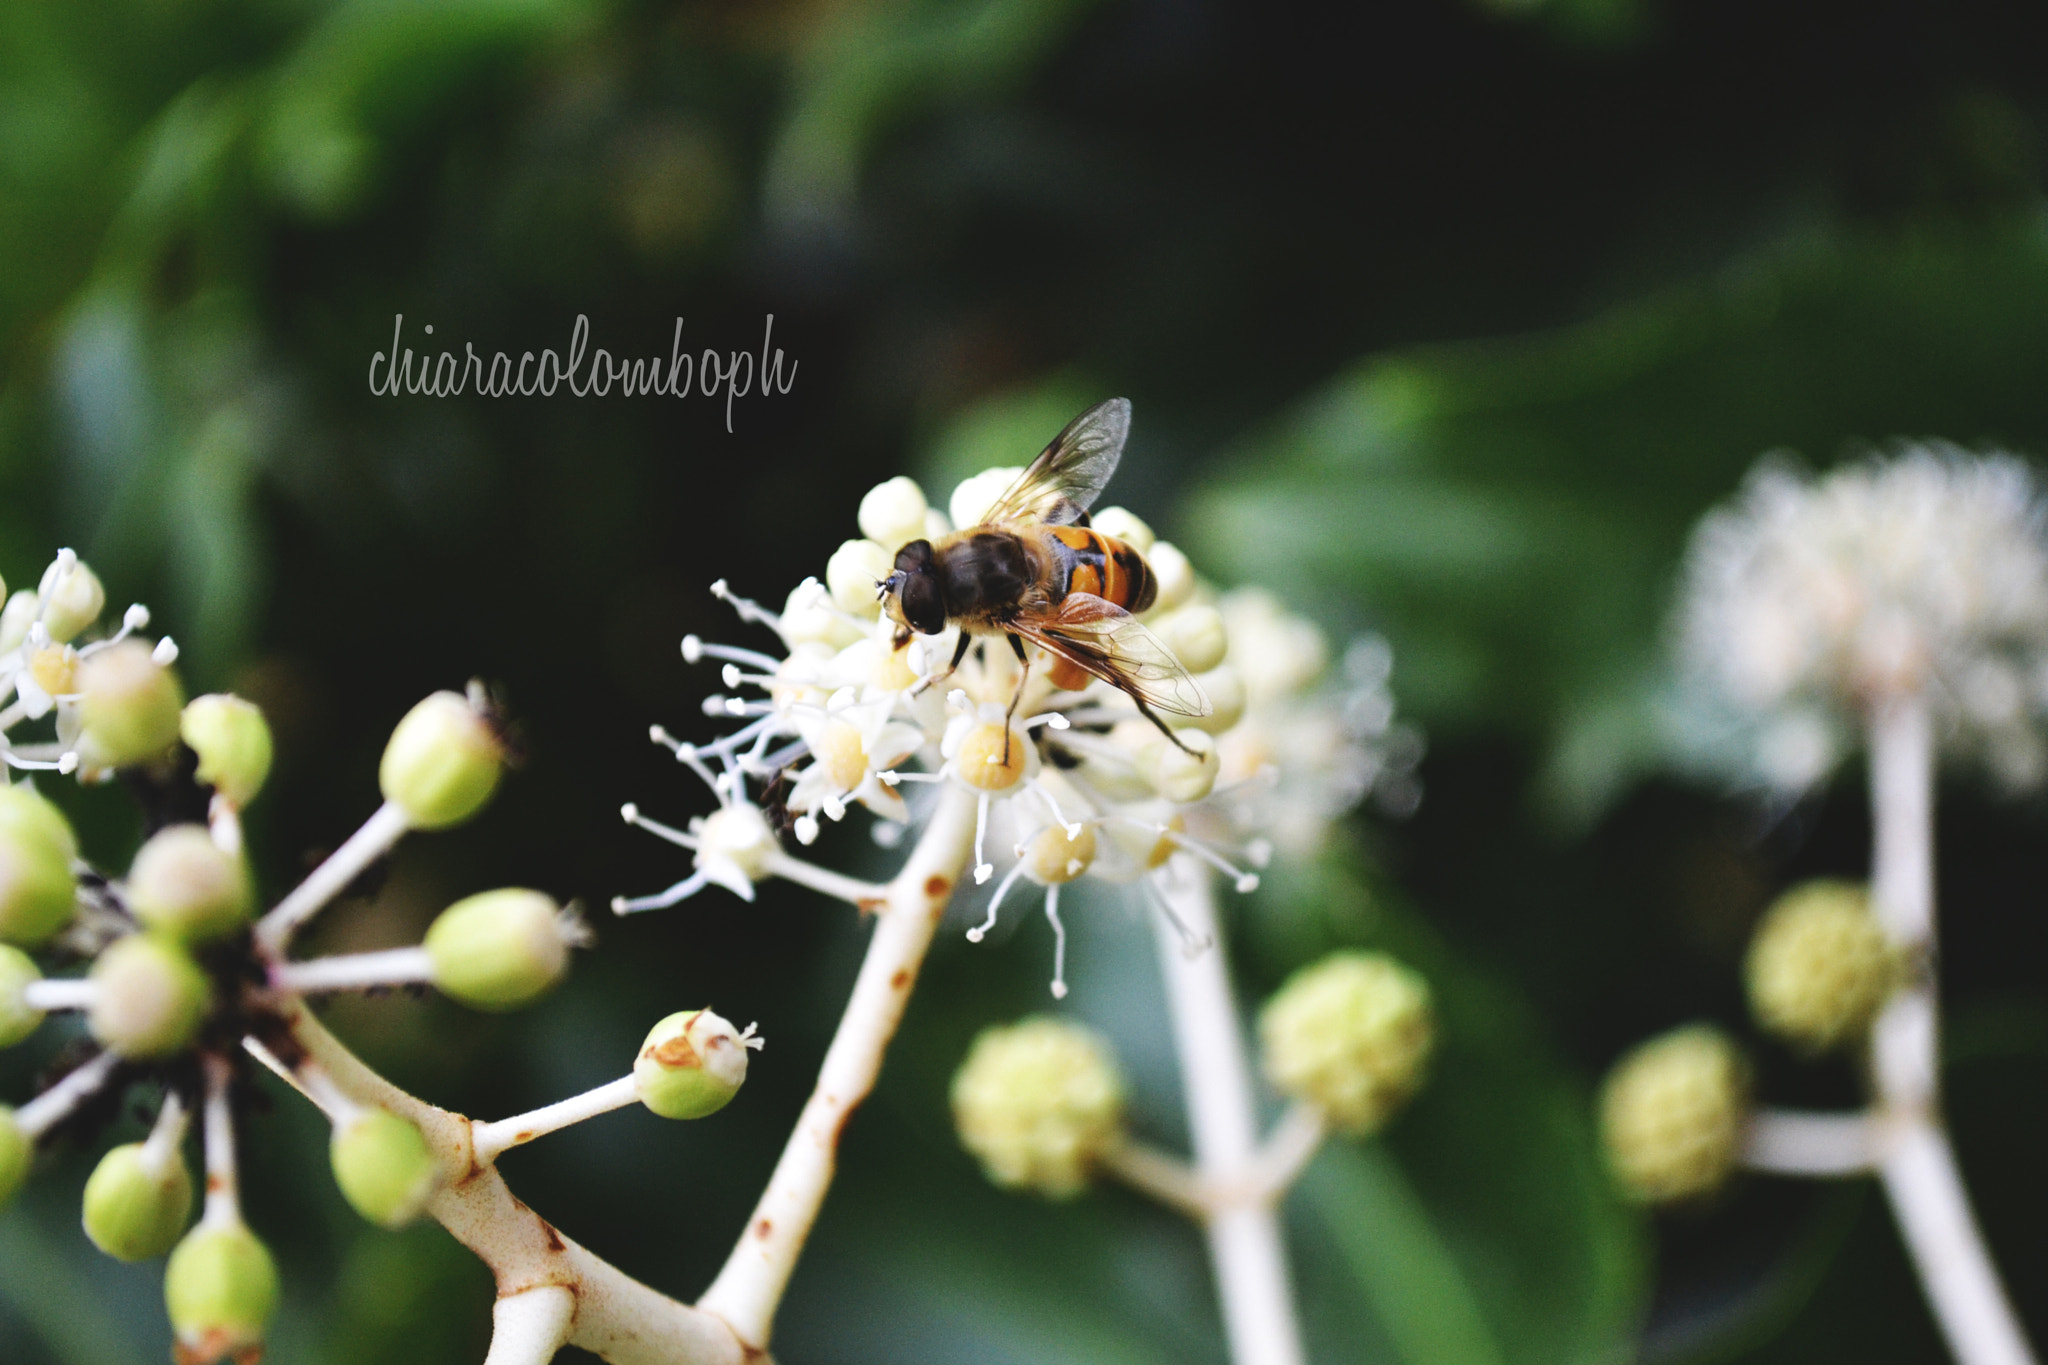 Photograph Bee-autiful World by Chiara Colombo on 500px